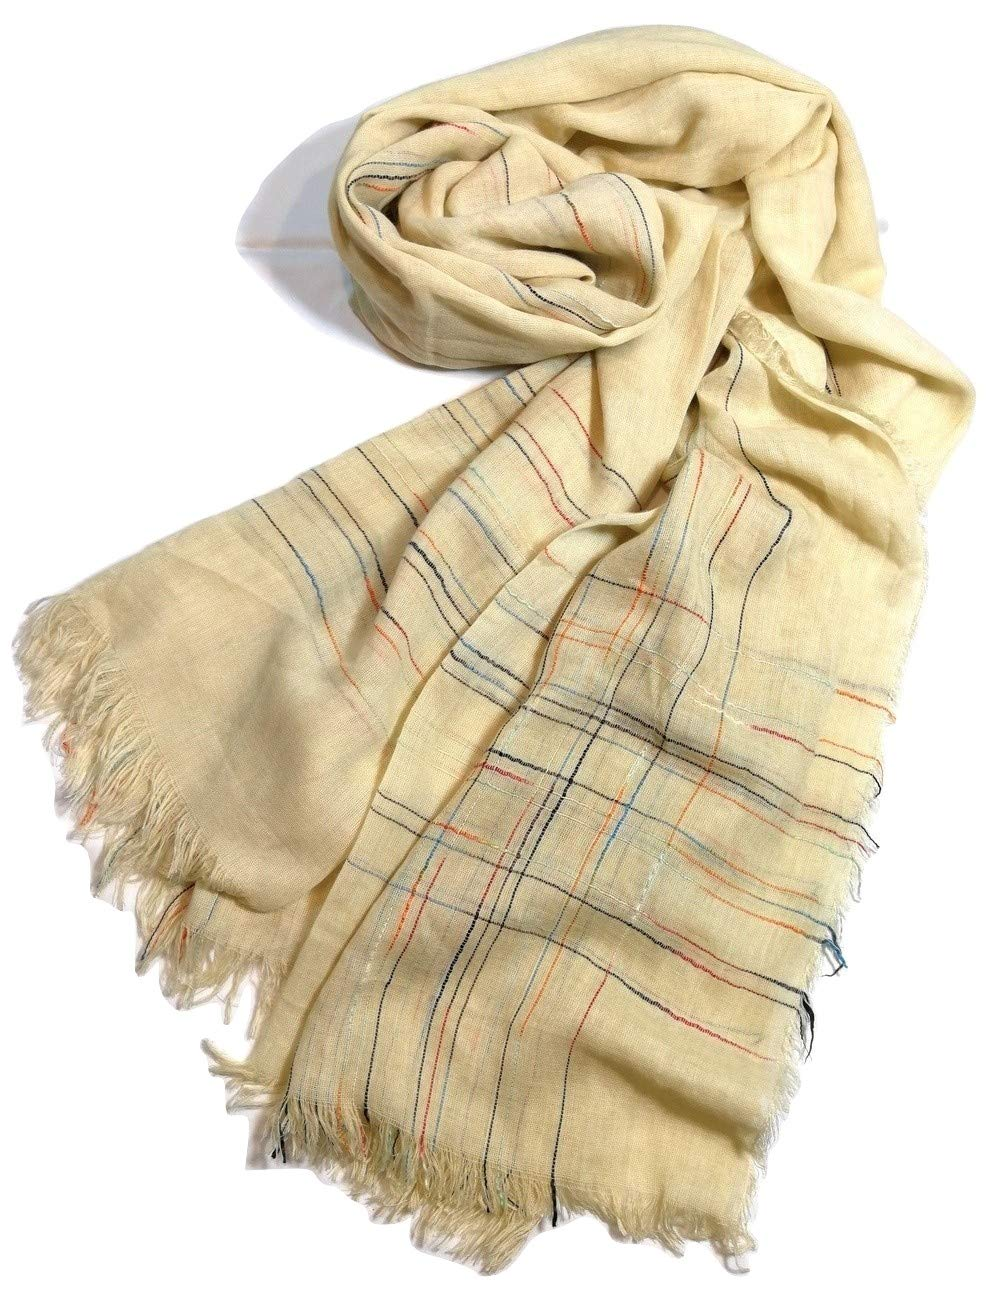 Shanlin Fine Cotton-Linen Scarves for Men (Yellow-CThreads)